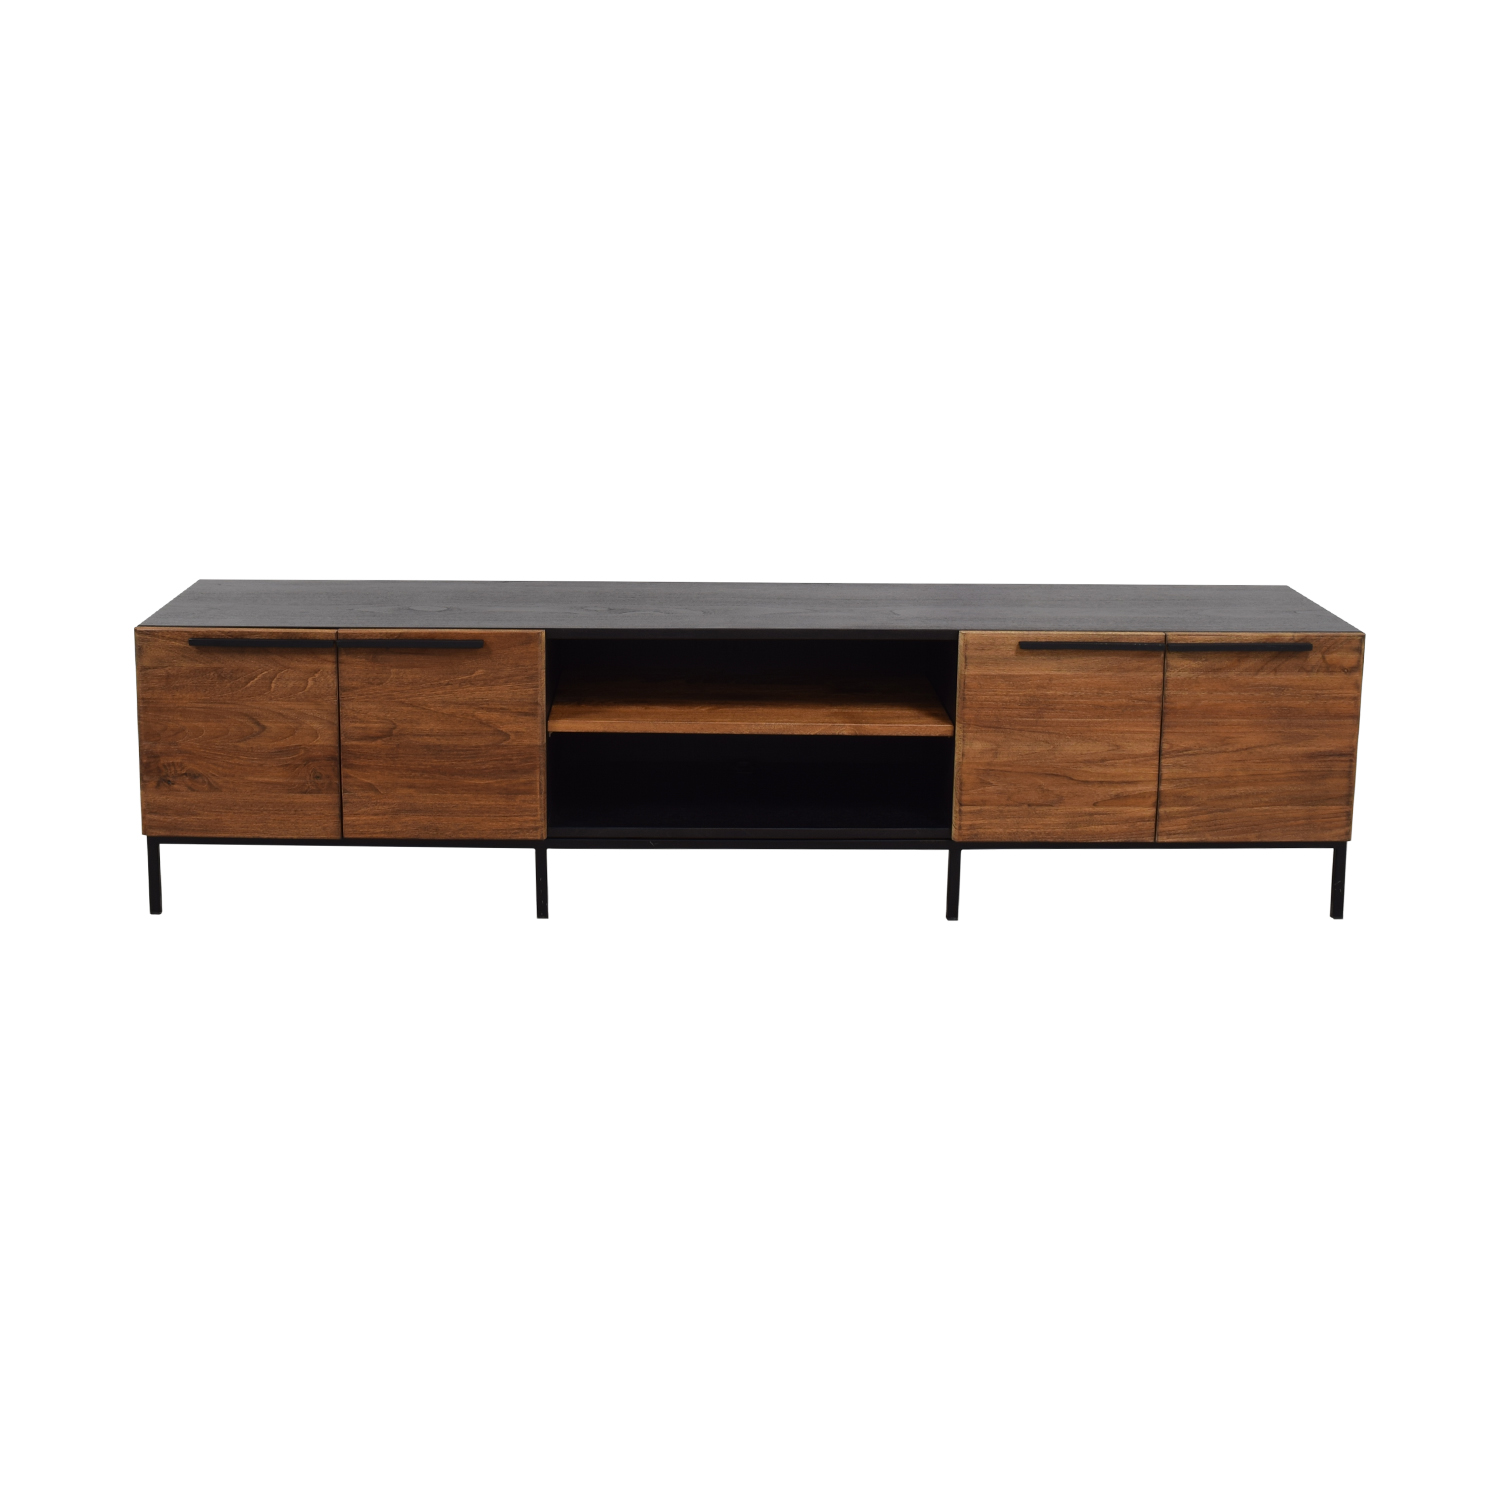 buy Crate & Barrel Crate & Barrel Rigby Natural Large Media Console with Base online